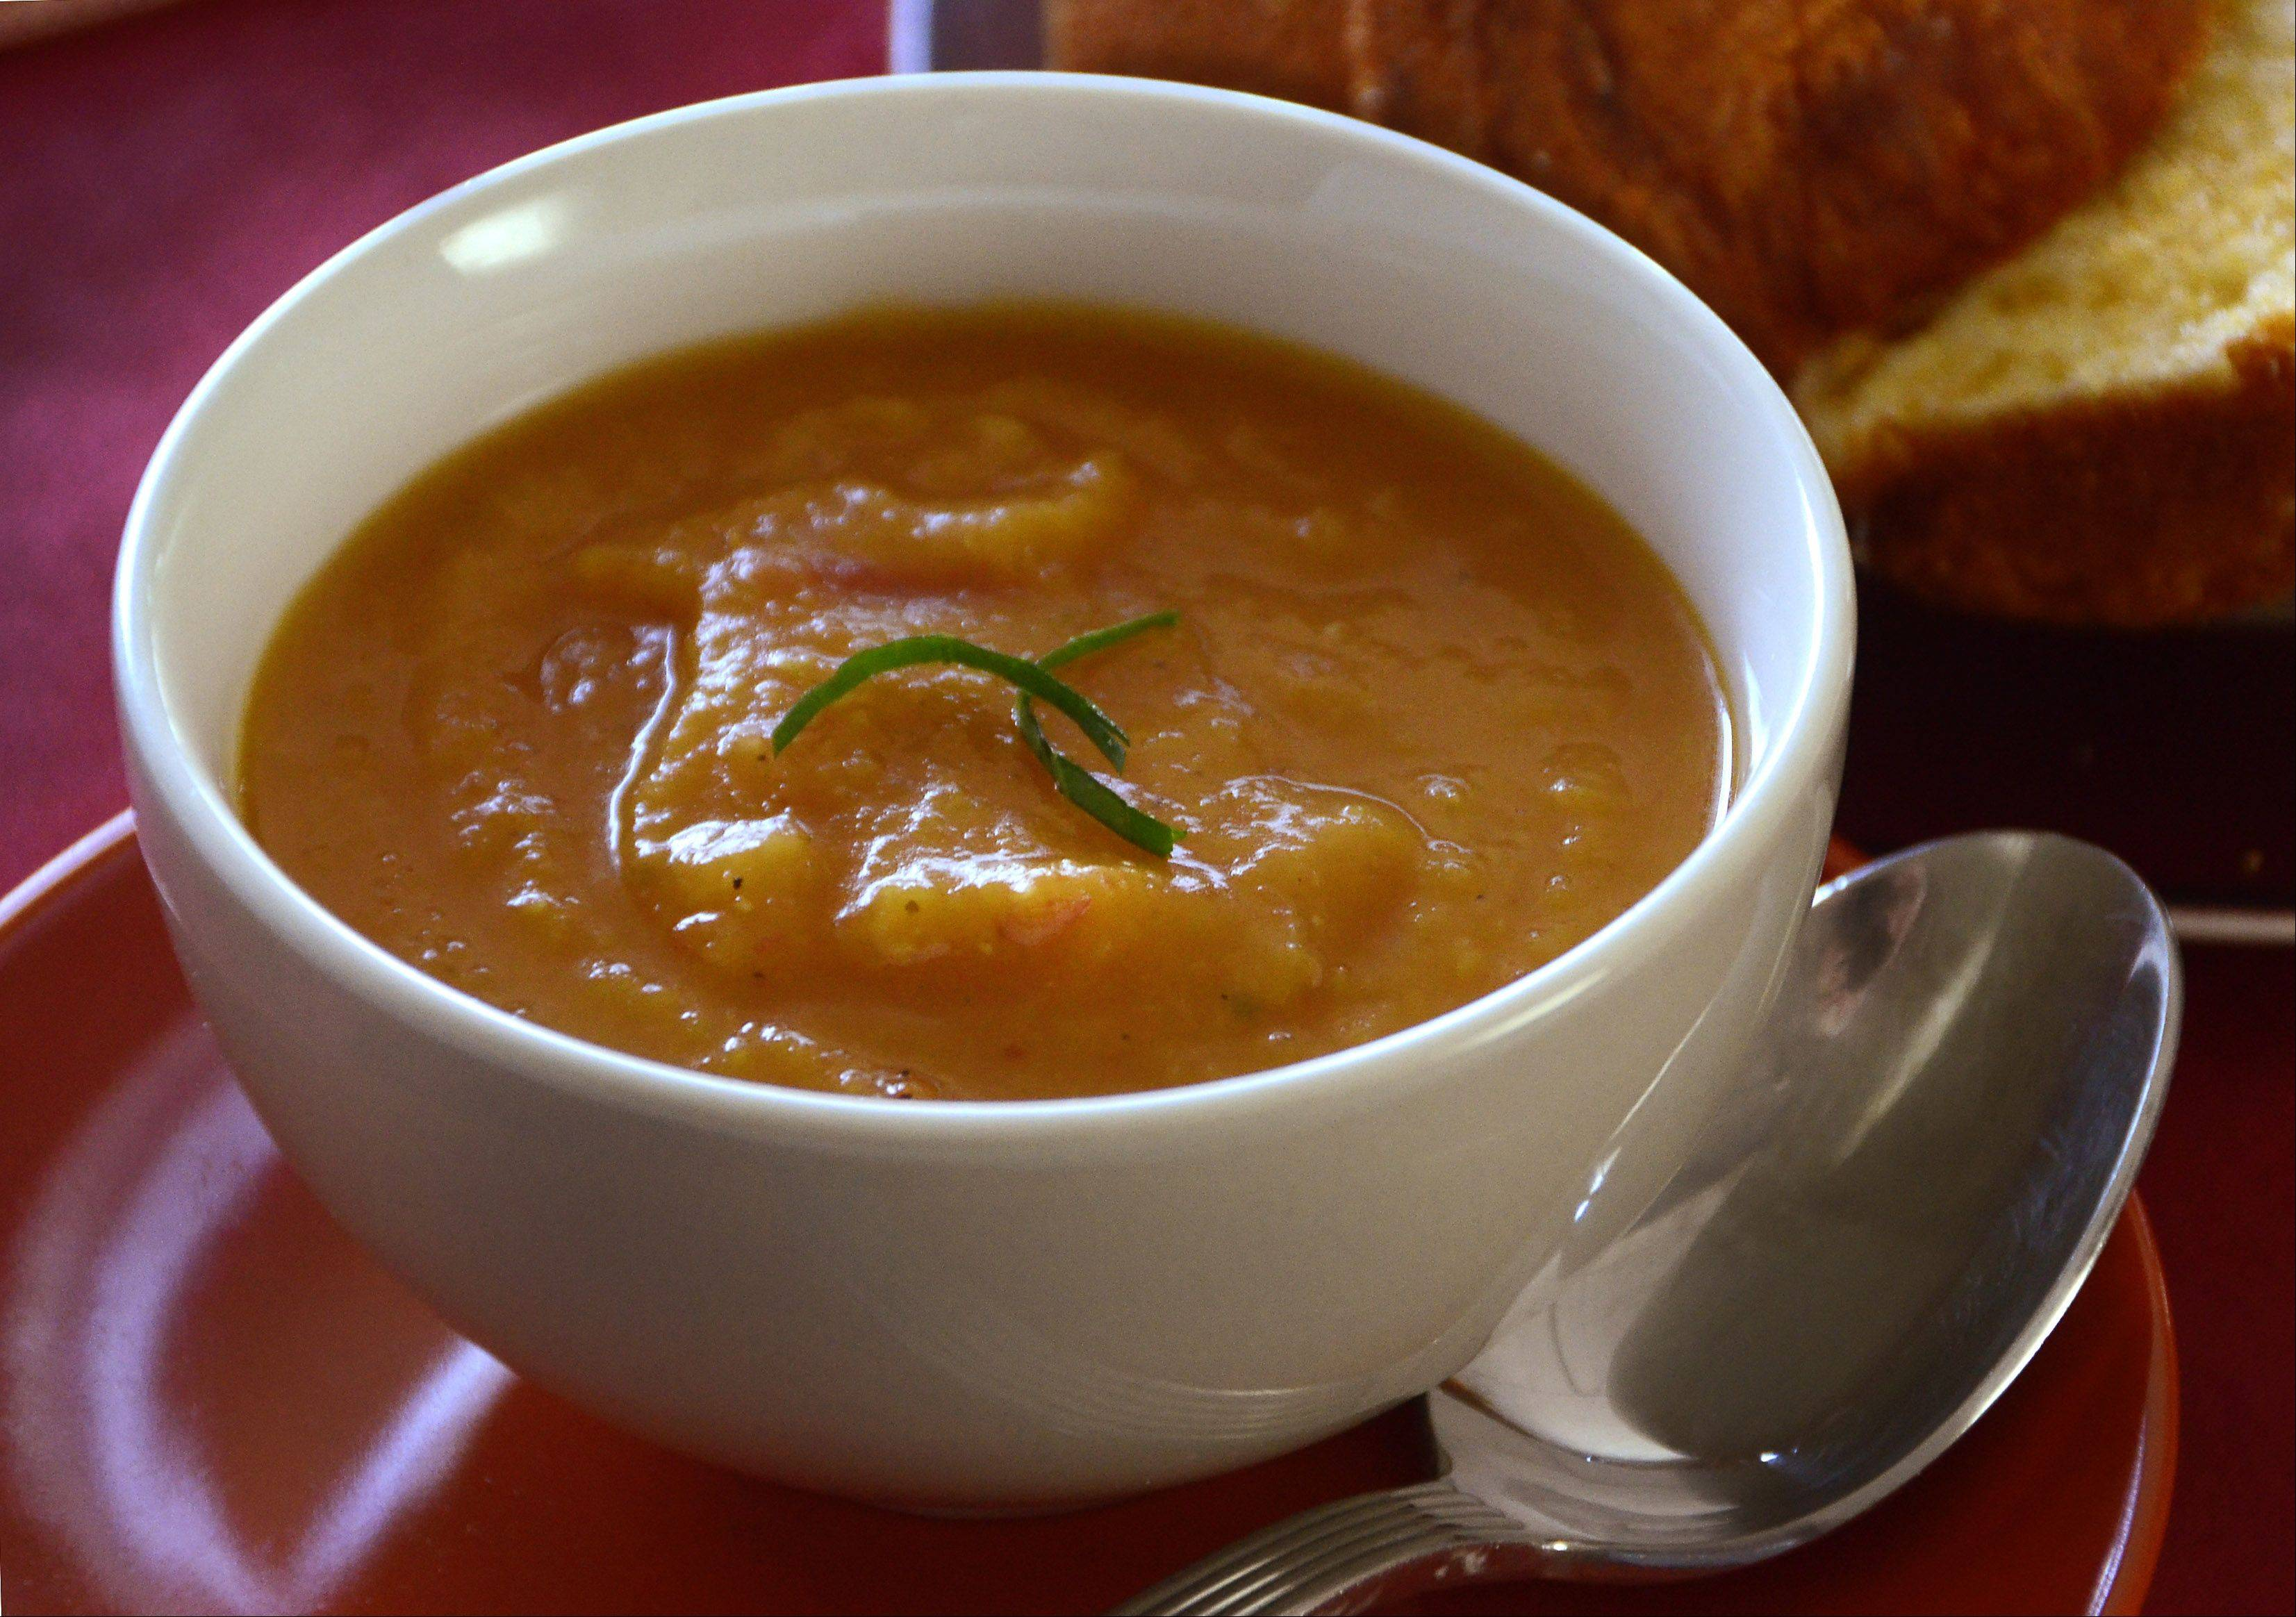 Spicy Butternut Squash soup warms up a cool autumn day.